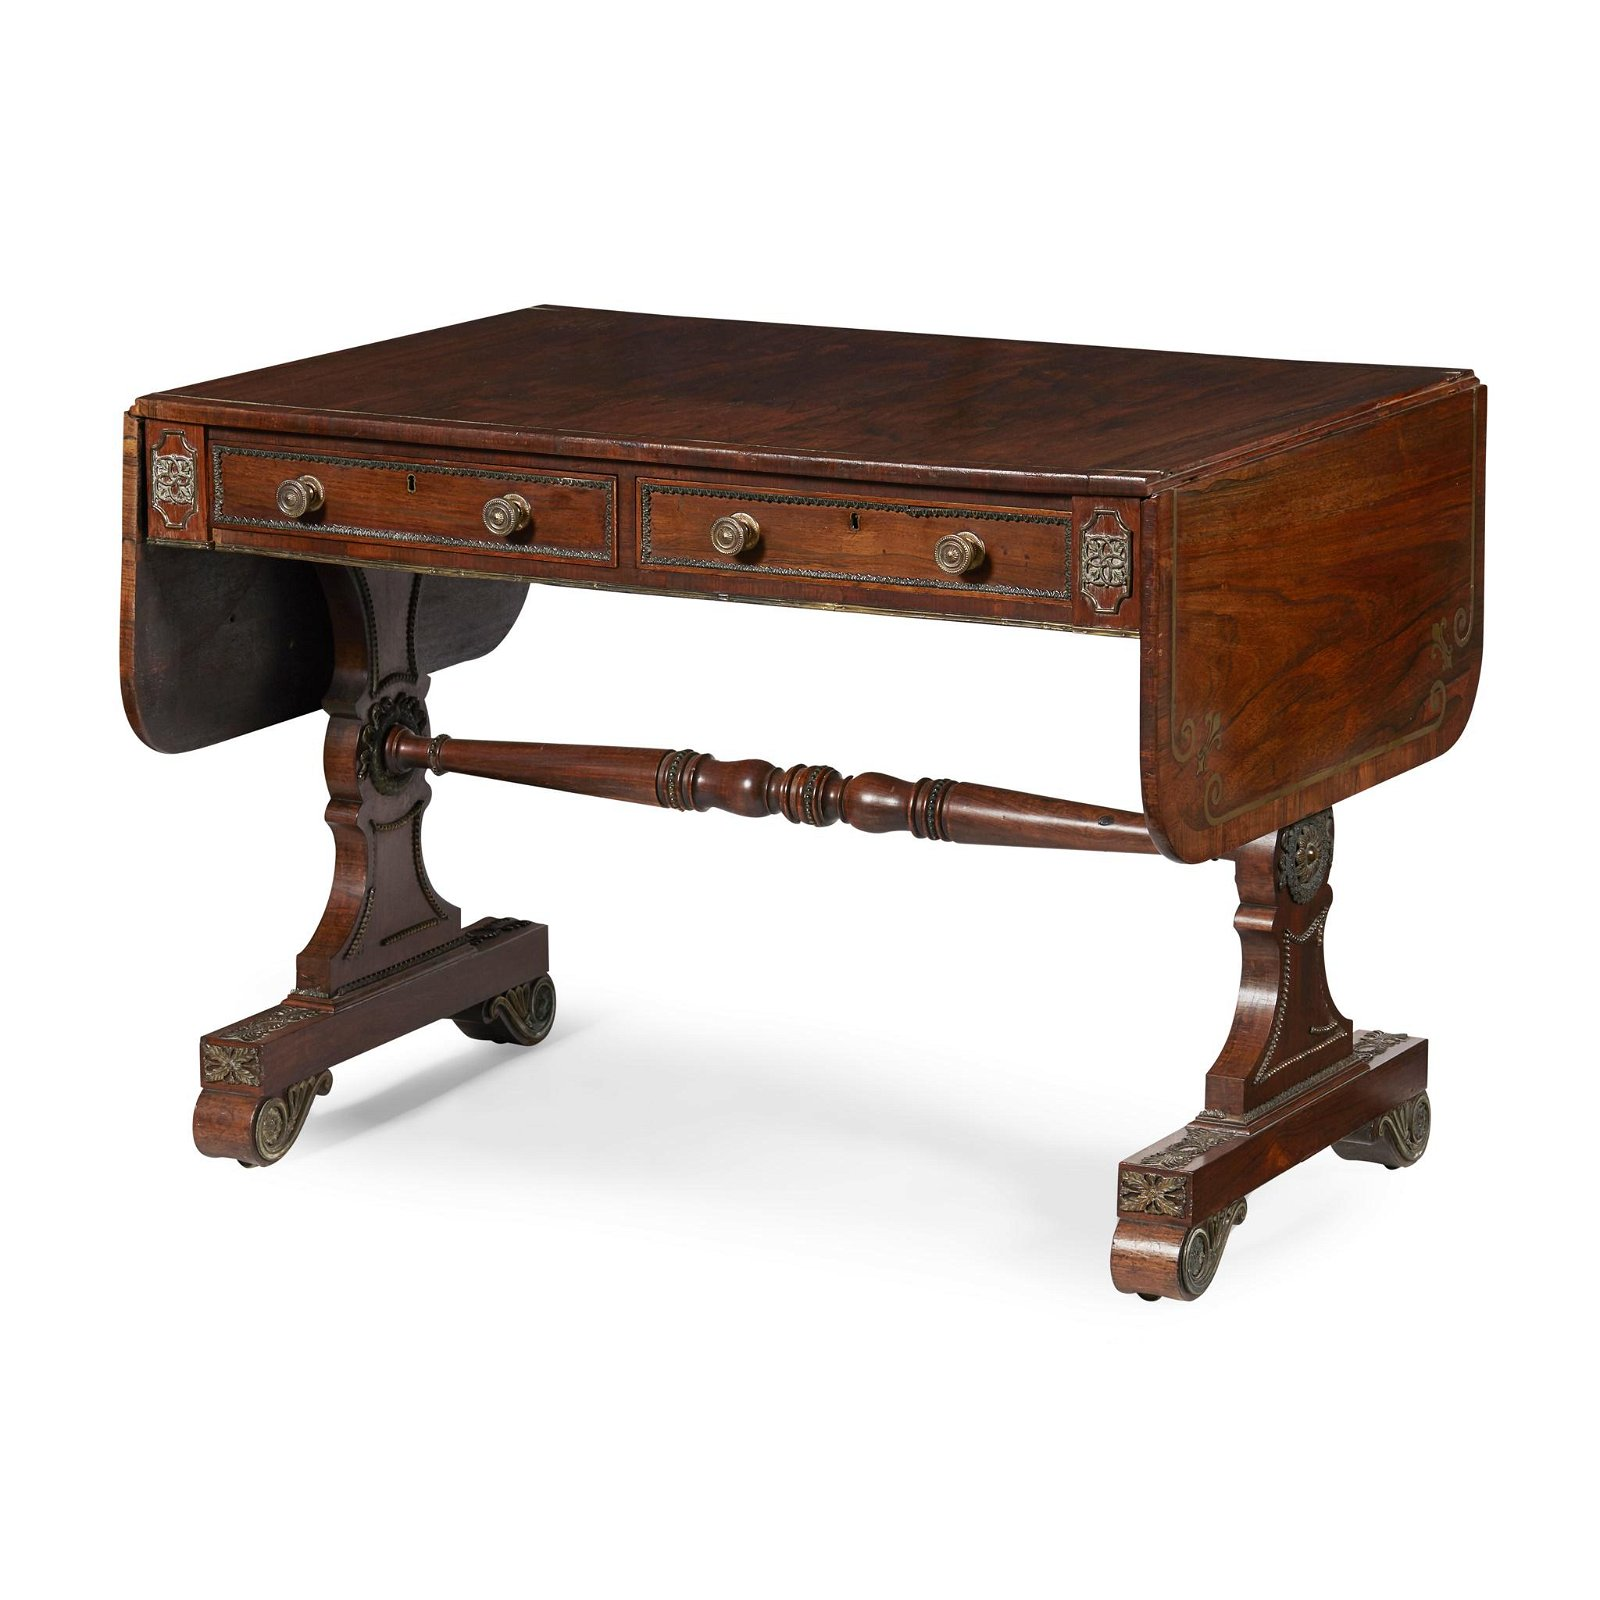 Y GEORGE IV ROSEWOOD AND BRASS INLAID SOFA TABLE EARLY